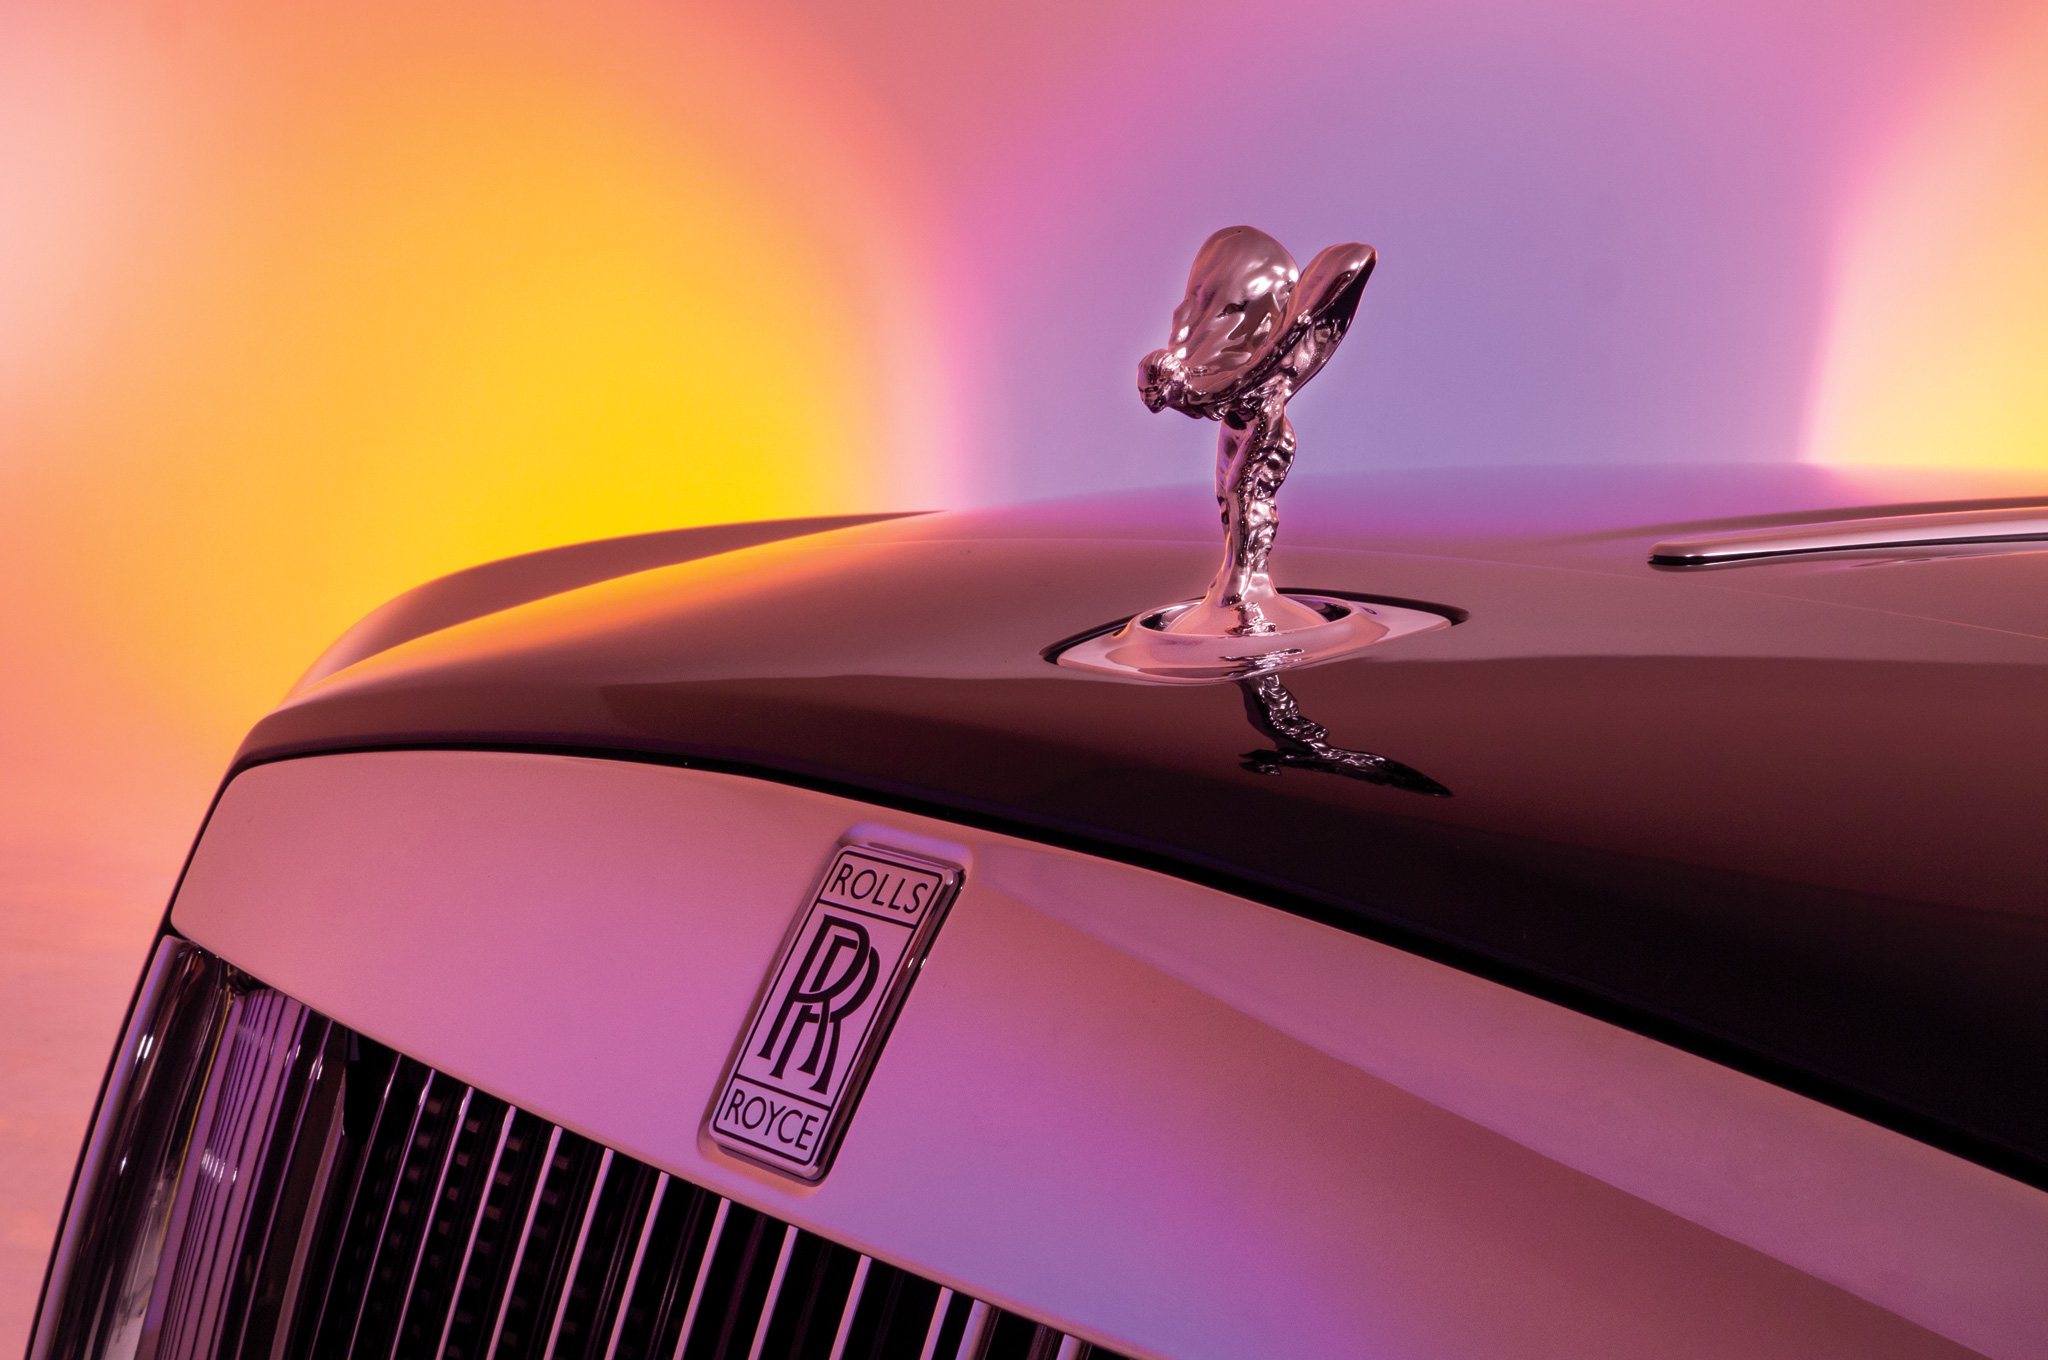 The Spirit of Ecstacy hood ornament is available with four optional finishes: solid silver, gold-plated, illuminated, and up-lit.